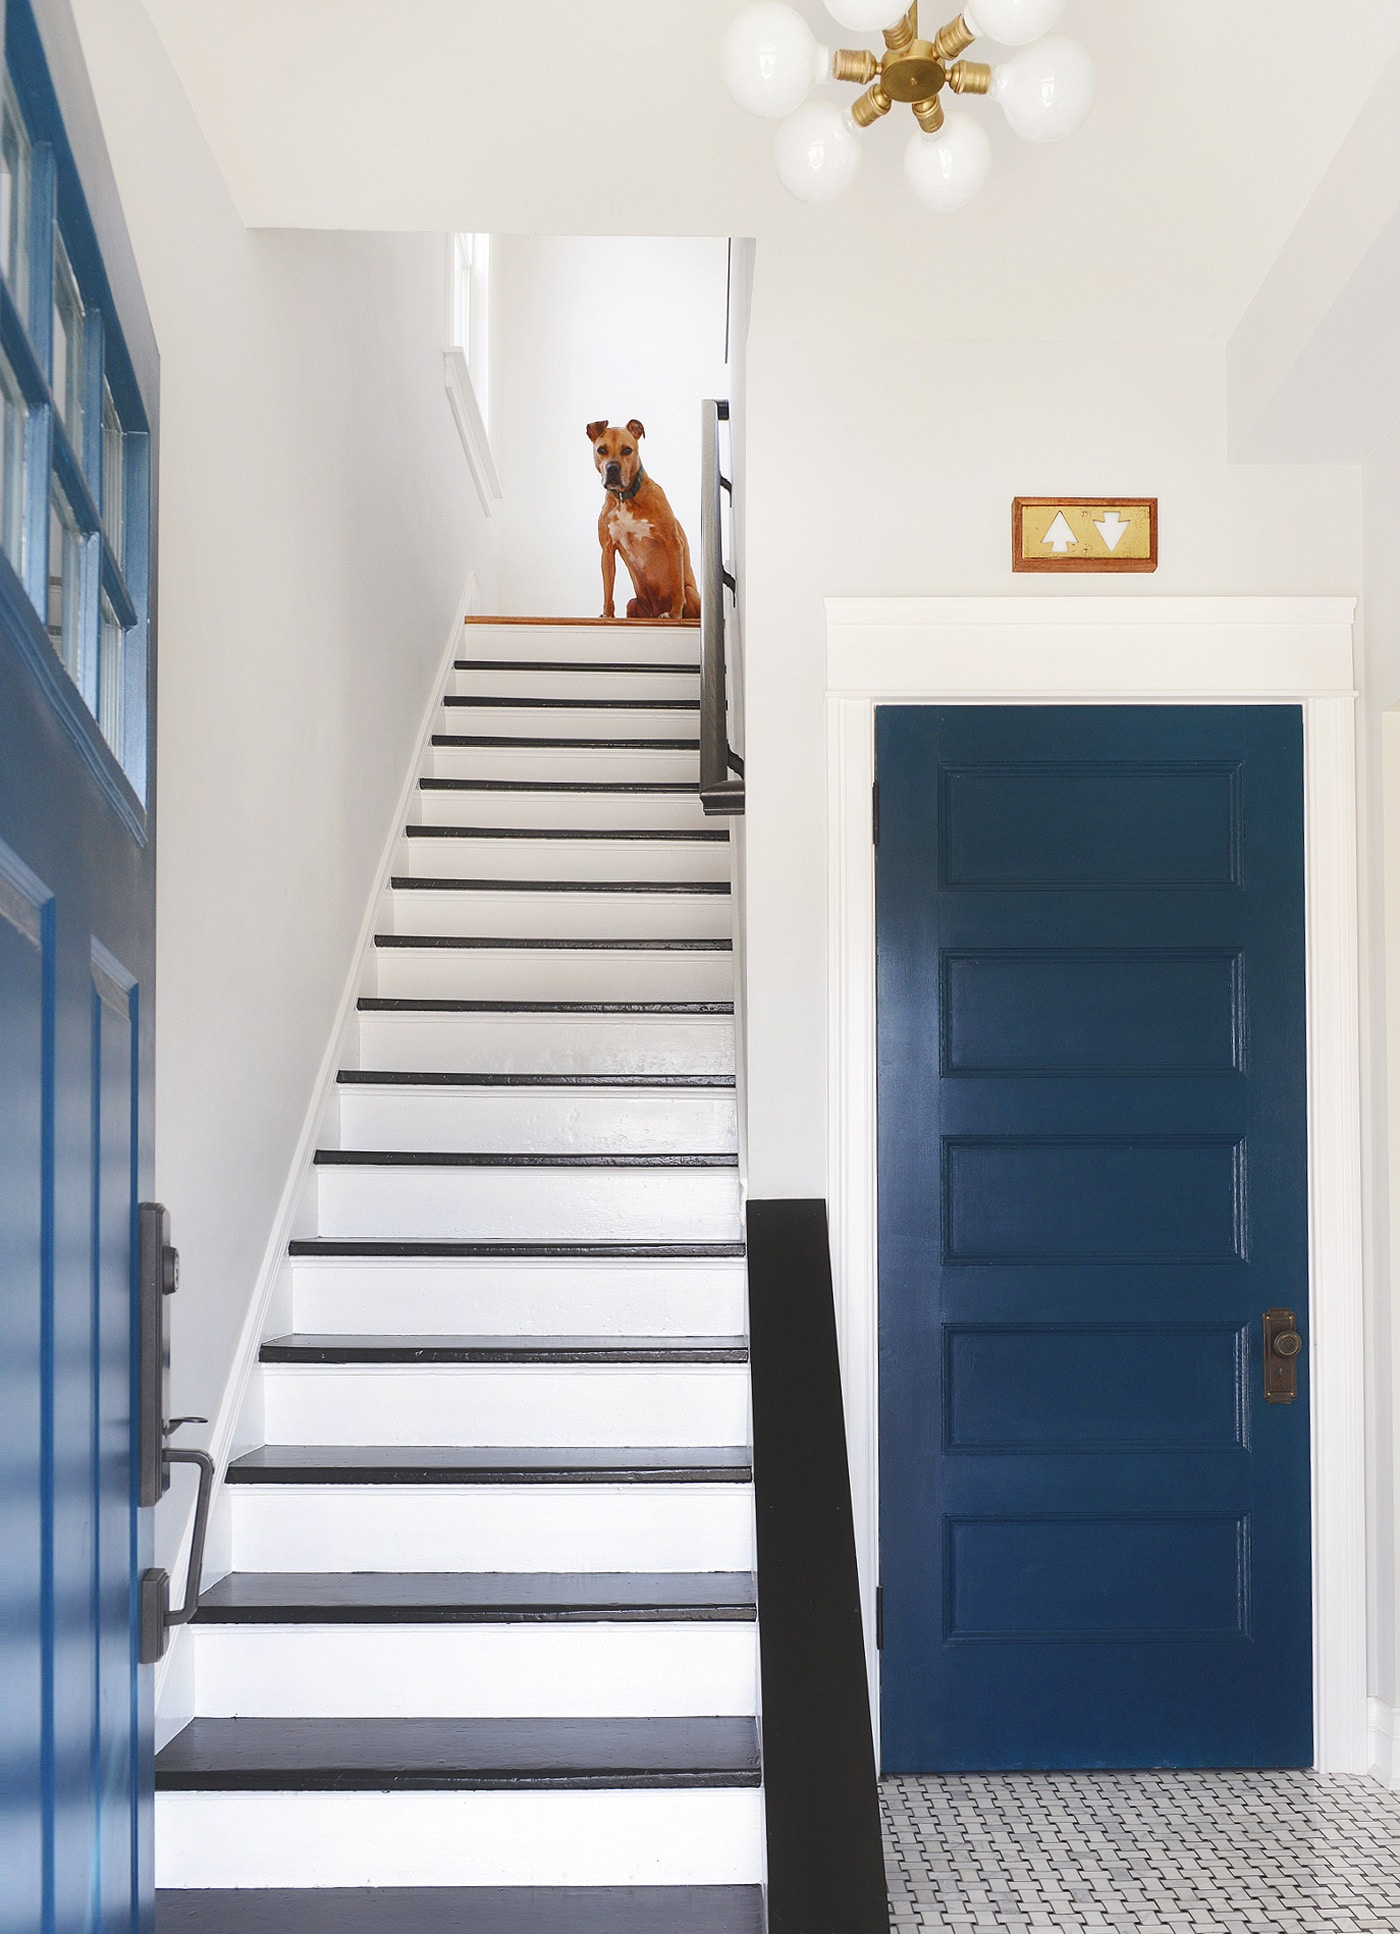 We Love Those Black And White Stairs. The Treads Are Pocked And Dented, A  Badge Of Honor From The Last Century Of Use. Thereu0027s A Stubborn Nail That  Pops Out ...